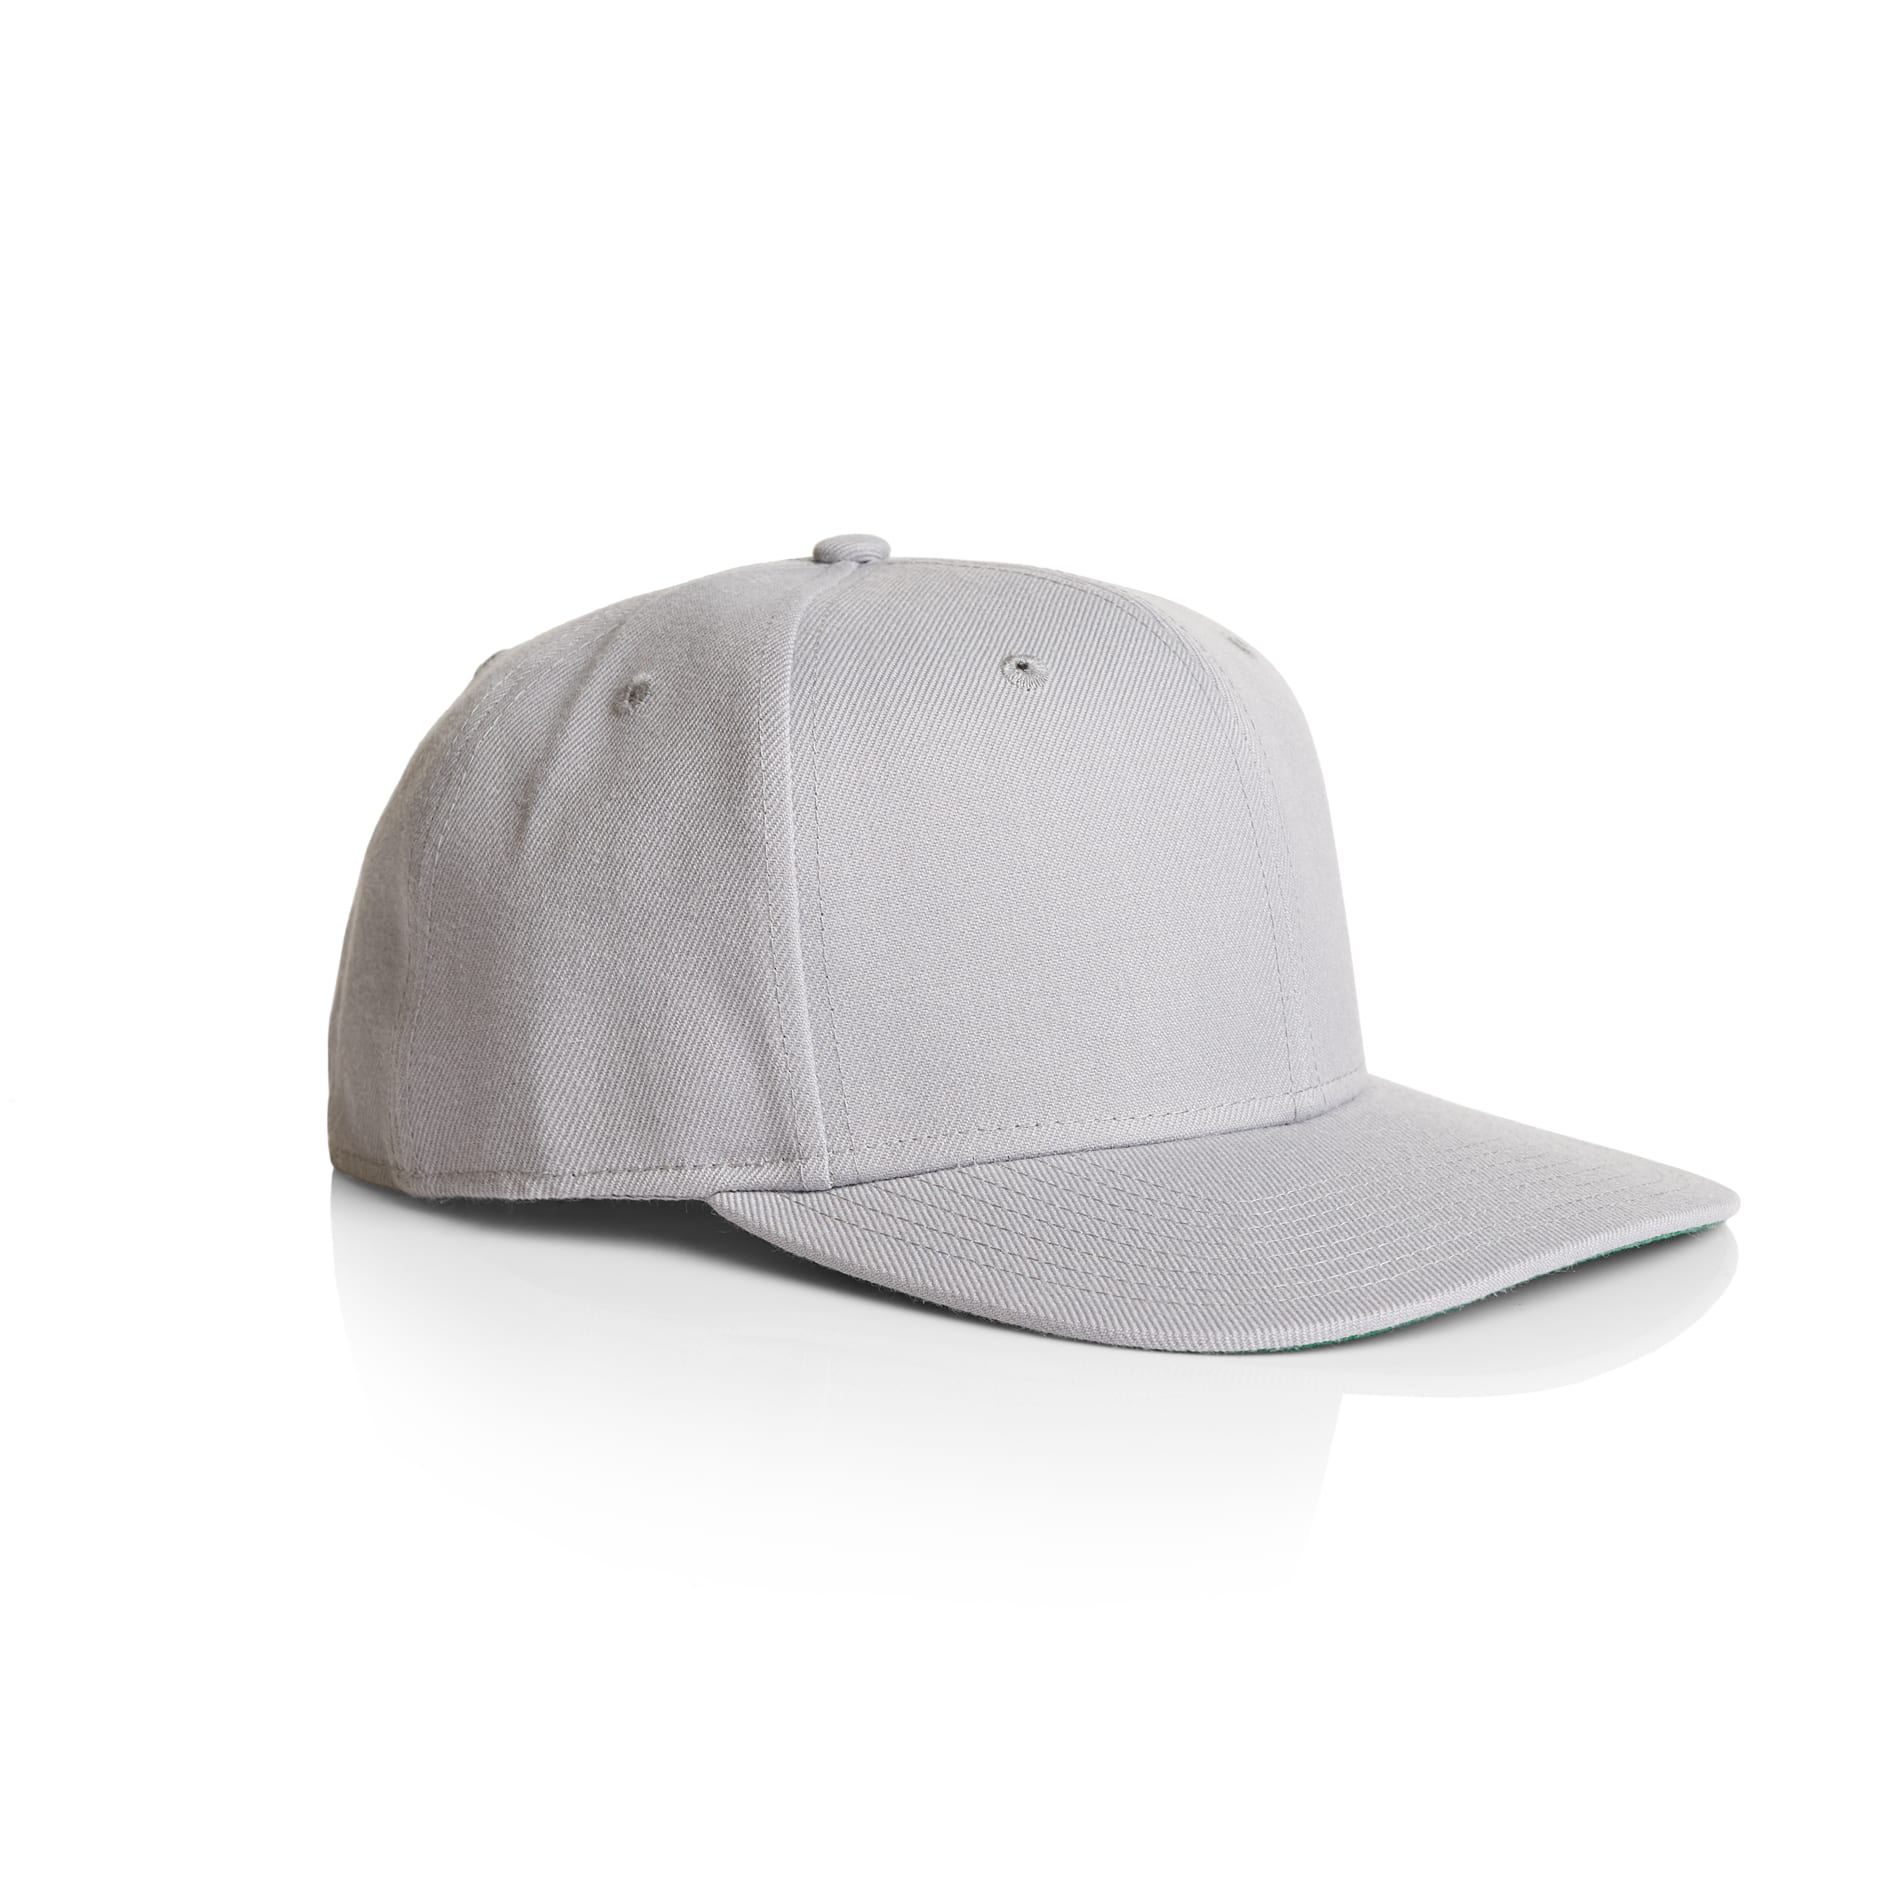 AS 1101 Trim Snapback Cap